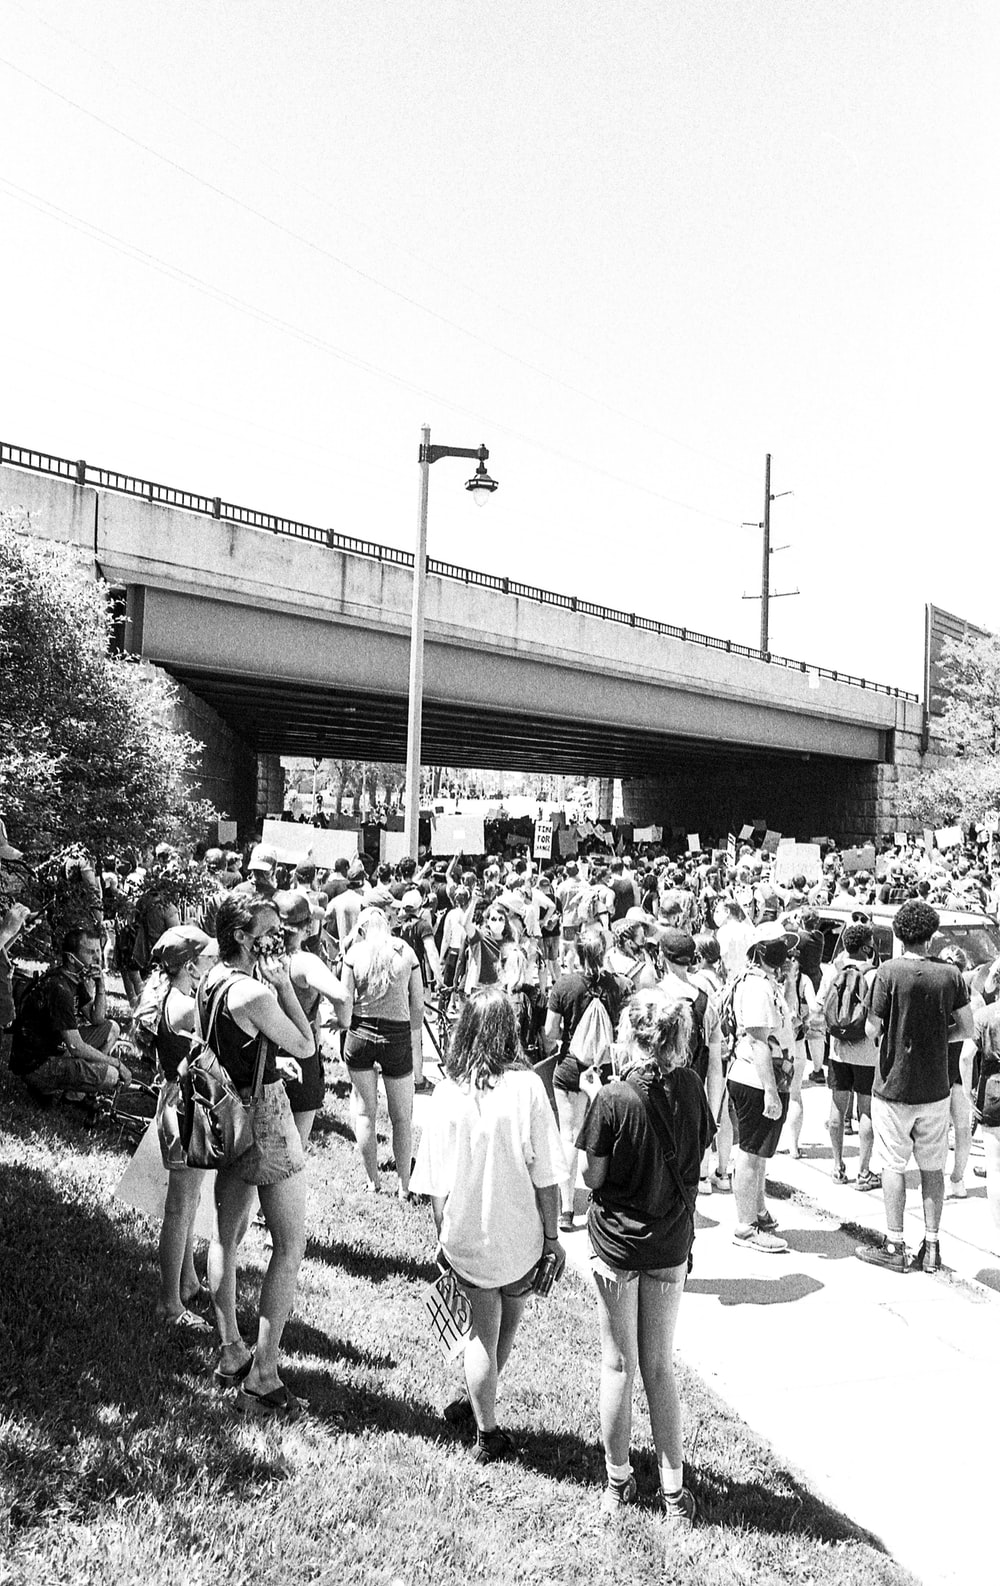 grayscale photo of people standing near trees